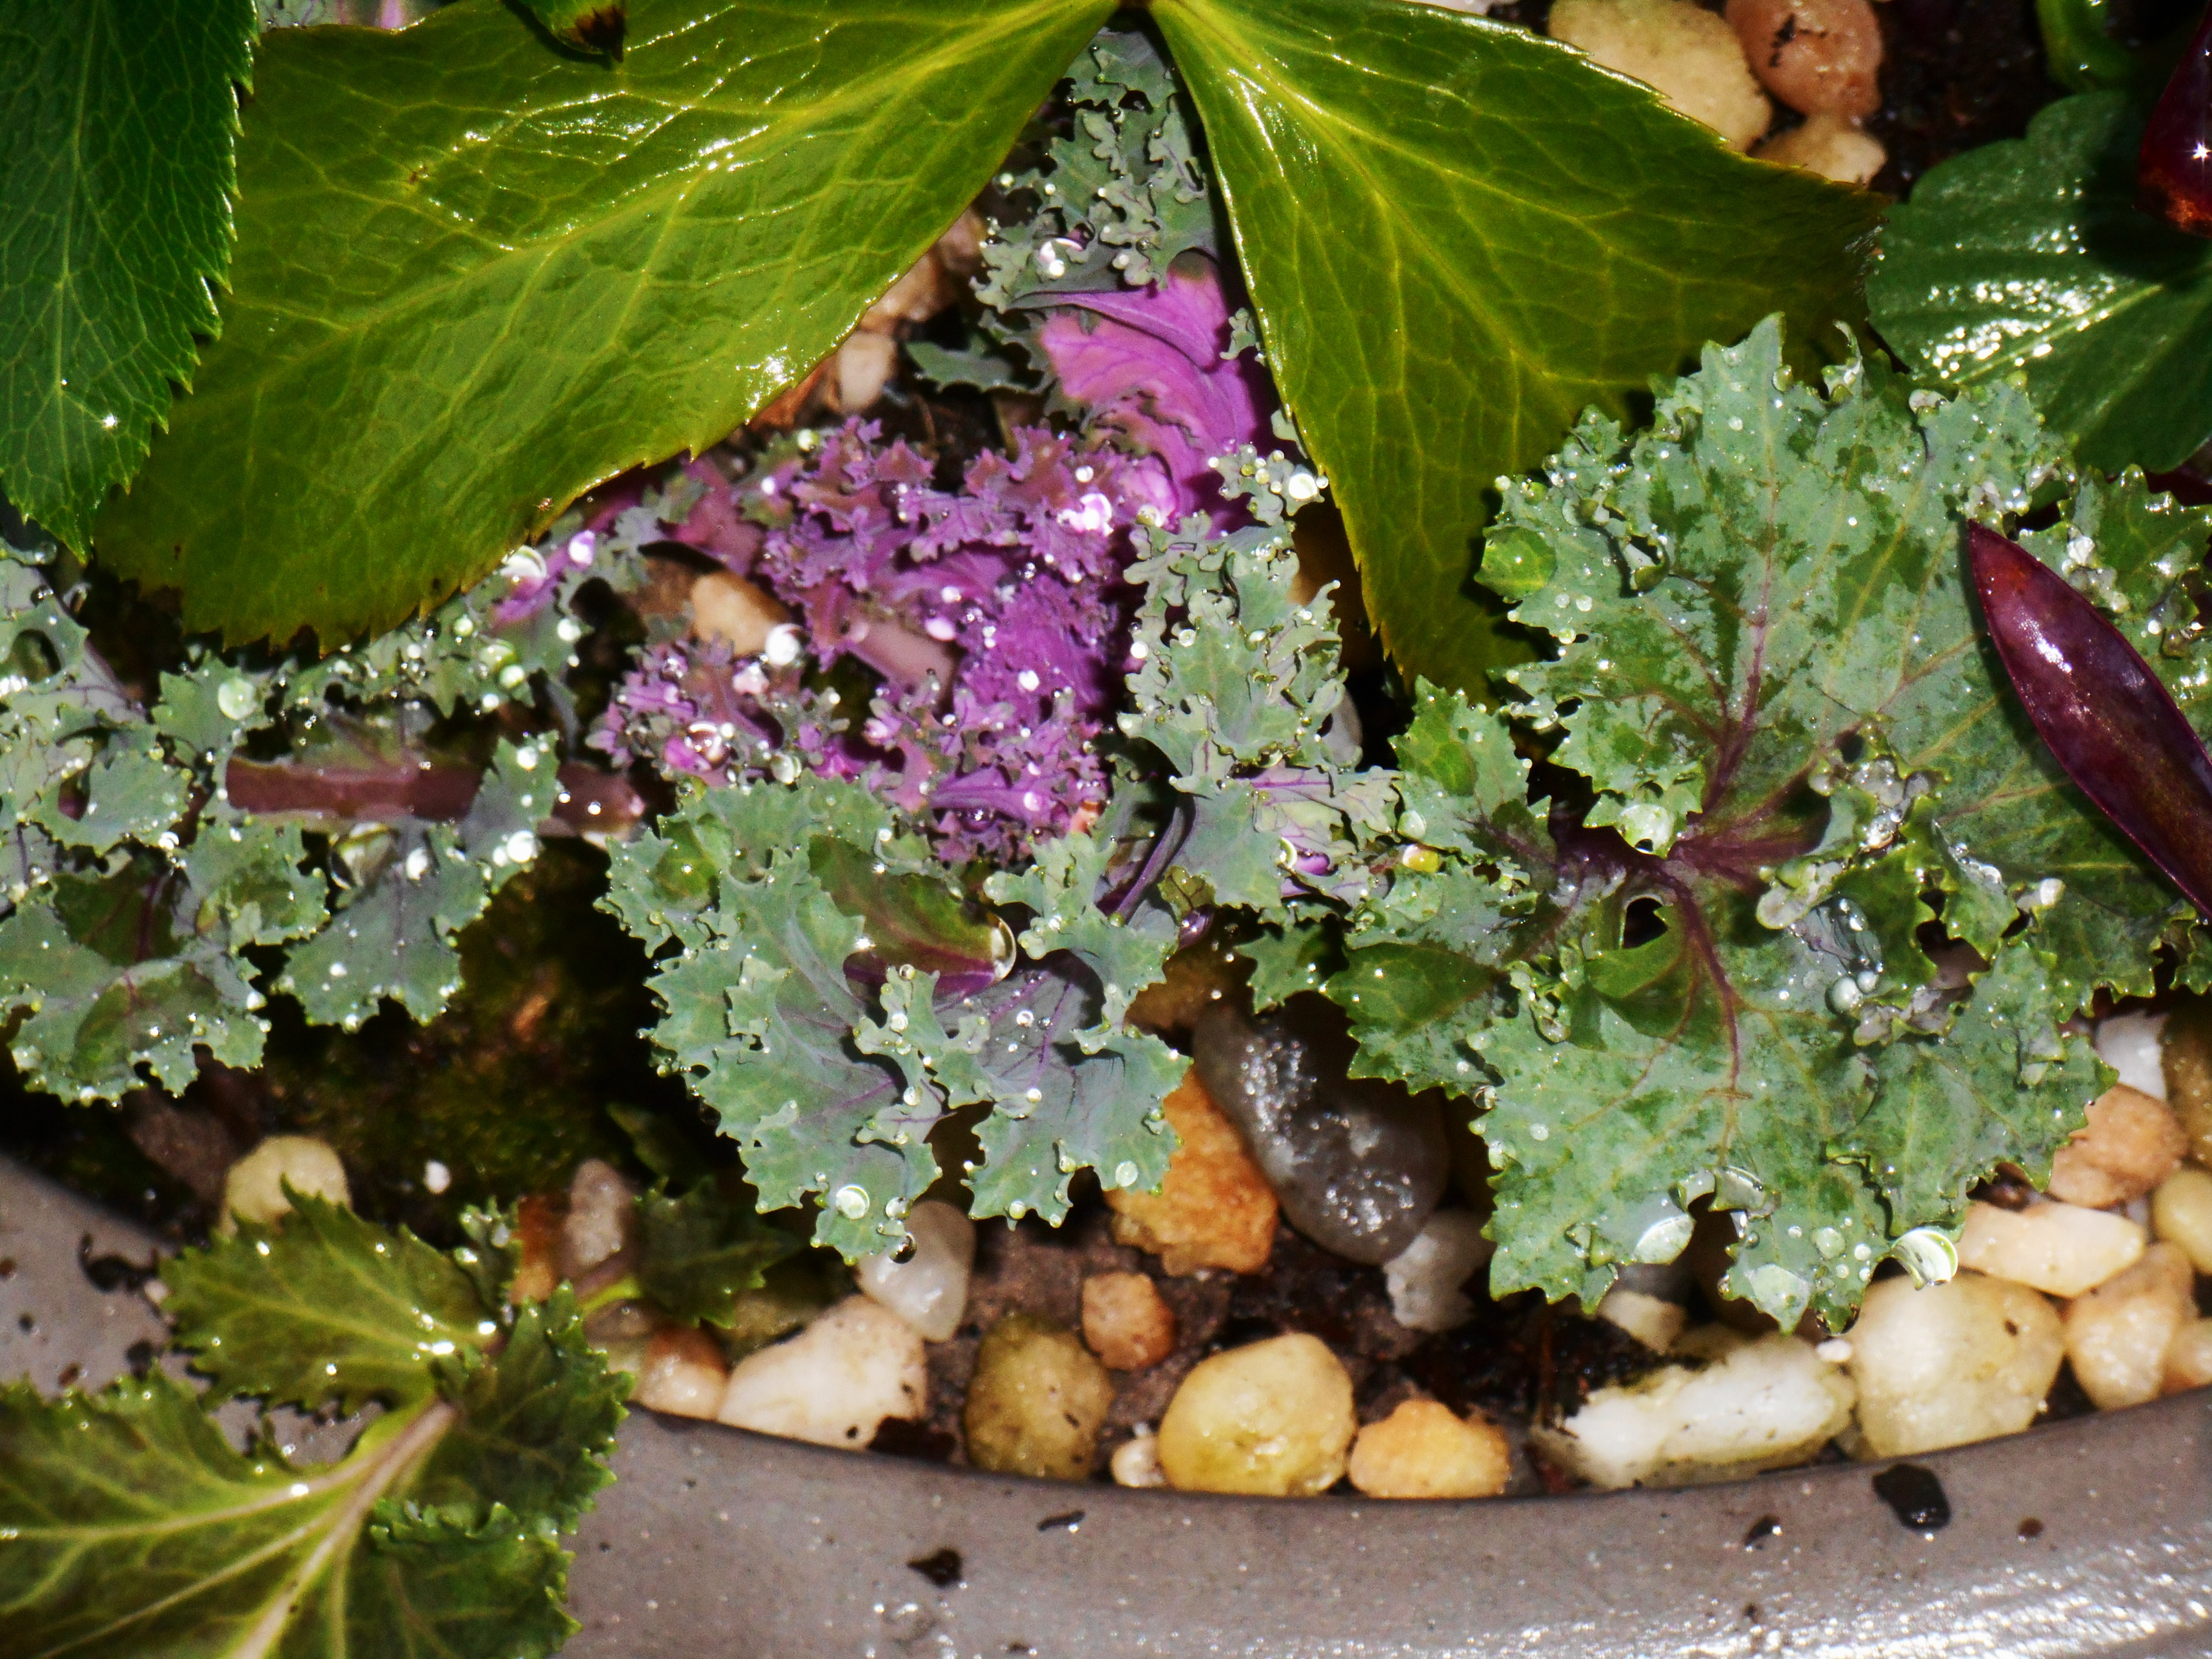 Ornamental cabbage with Heuchera in a newly planted pot.